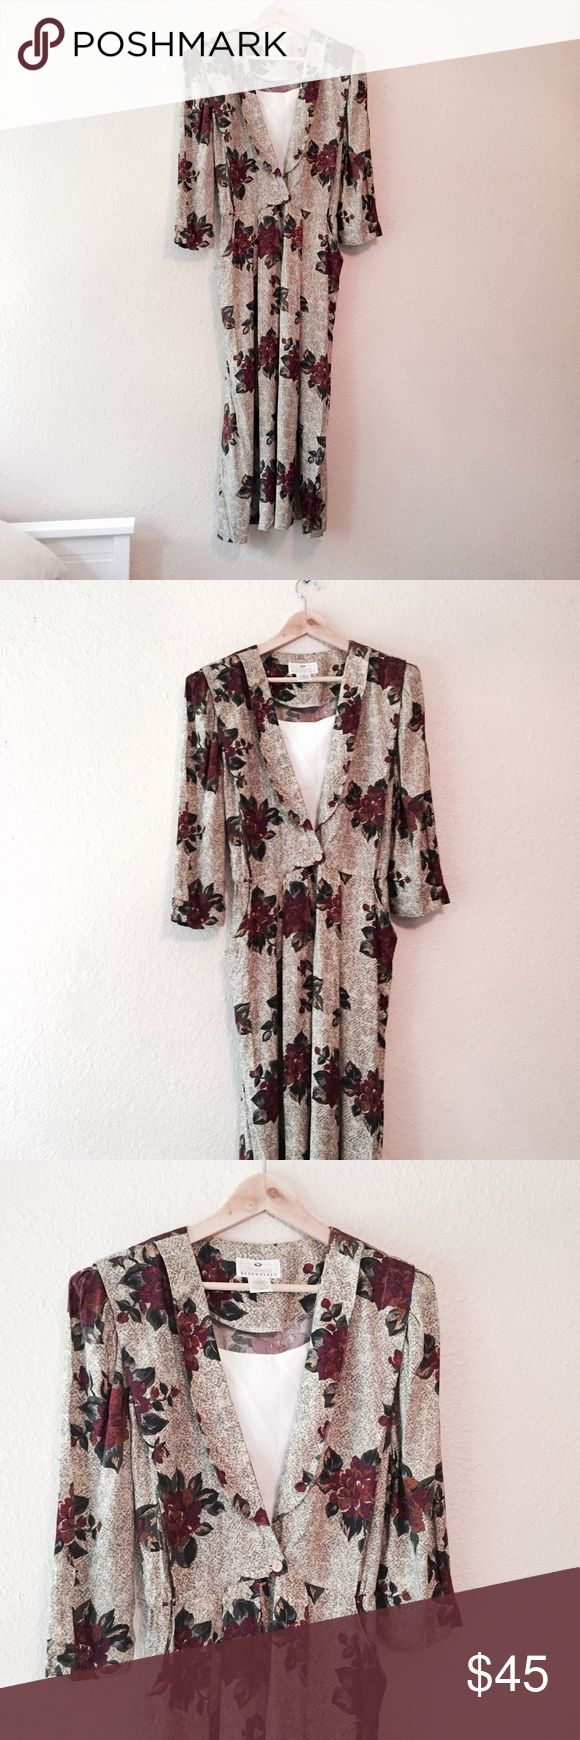 Vintage 1980s rose print maxi dress Gorgeous vintage 1980s dress. Lovely rose print in neutral colors. Maxi dress length with 3/4 long sleeves. Has shoulder pads that can be removed. White bib in the front and pockets on the sides. Has loops for a belt. Worthington Essentials Brand. Excellent vintage condition. Size 12. Vintage Dresses Maxi